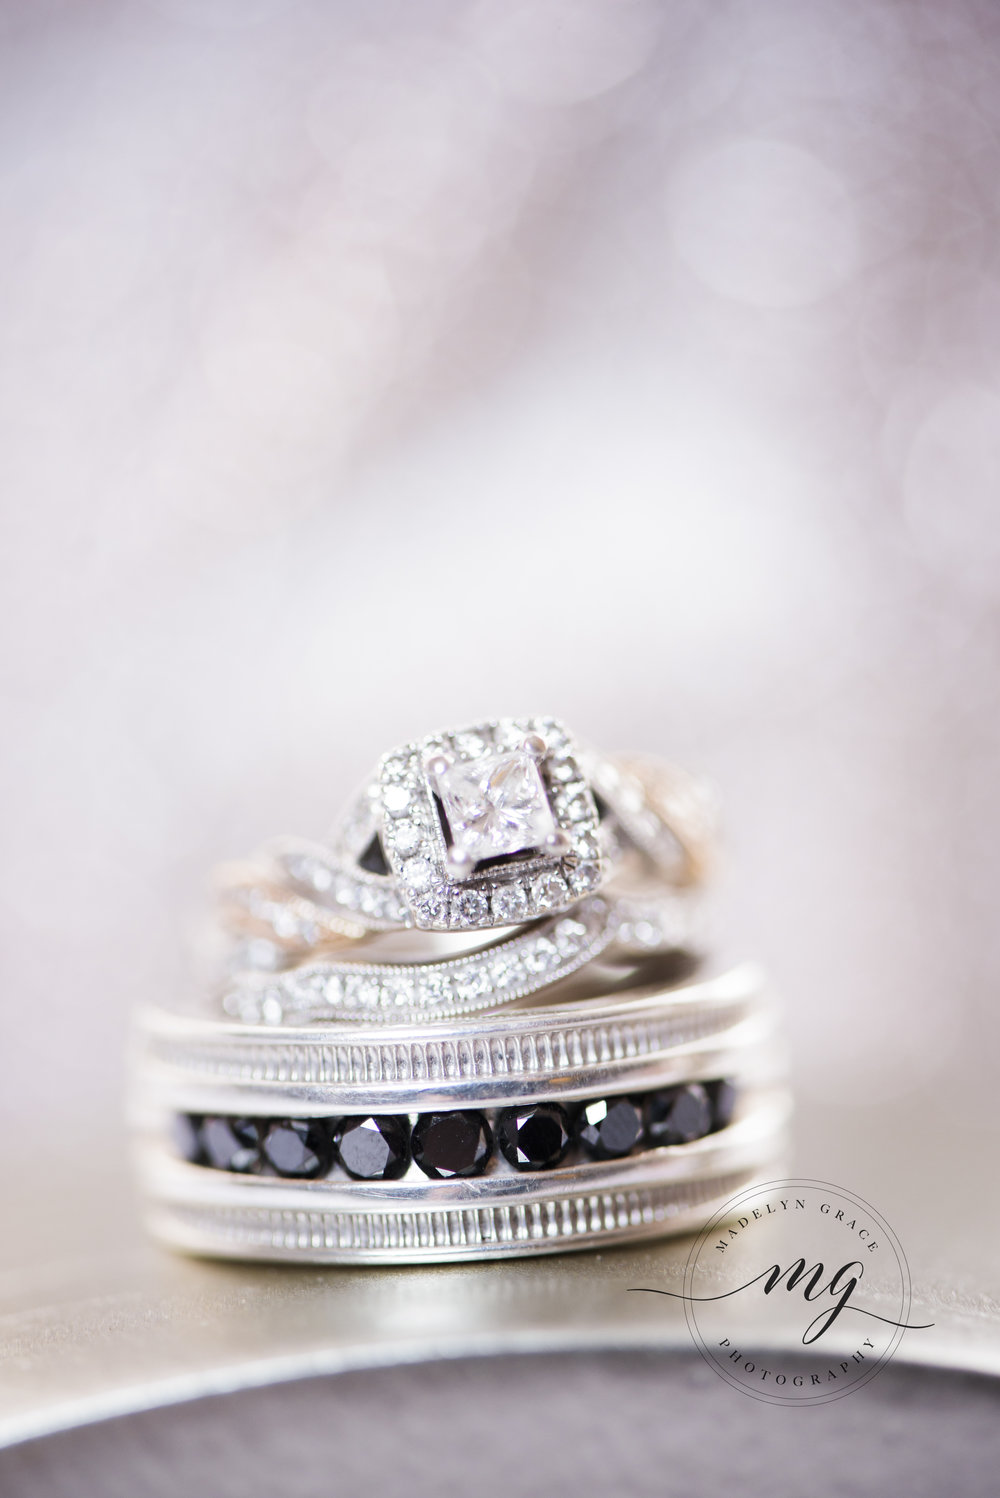 Michigan_wedding_photographer_details_the_ring_shot.jpg